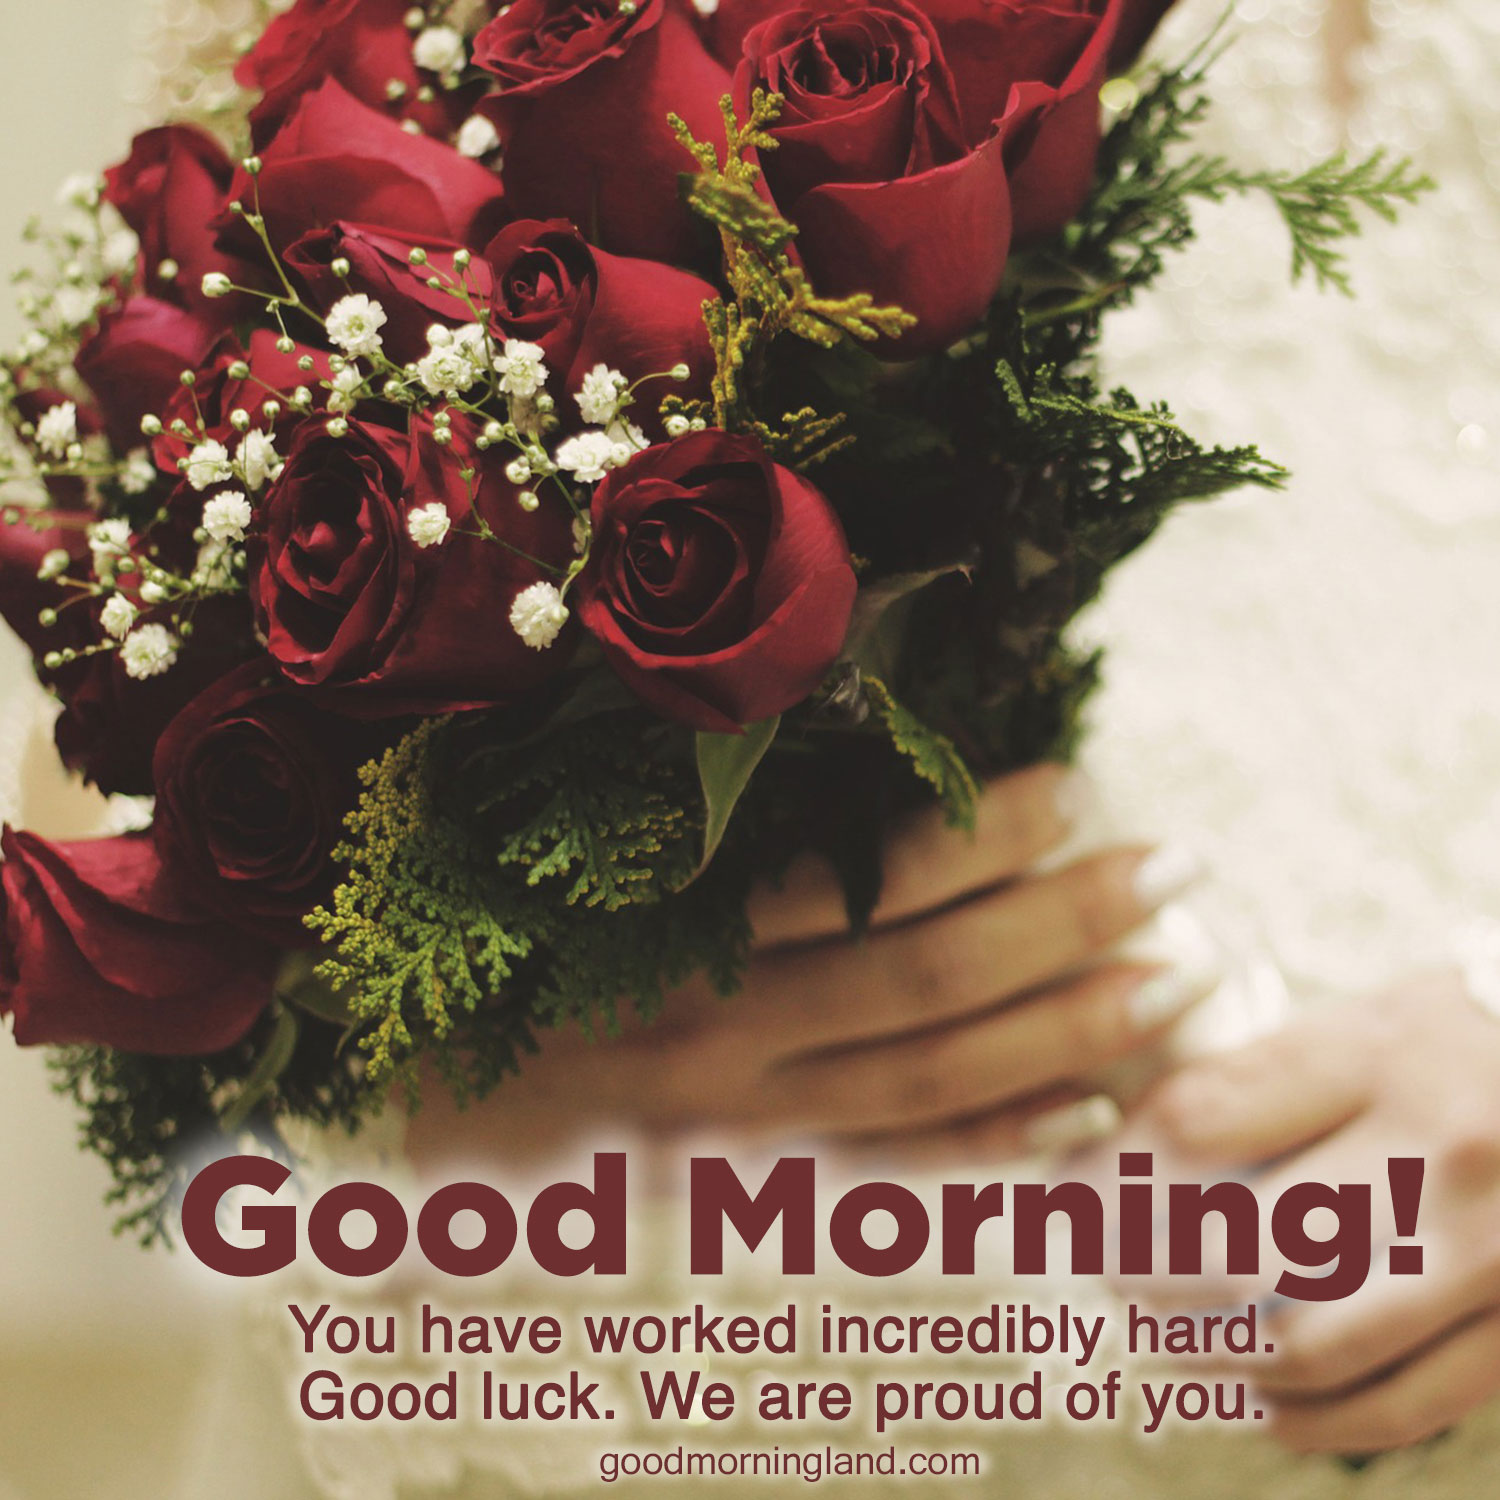 Top animated Good morning wishes and images - Good Morning Images